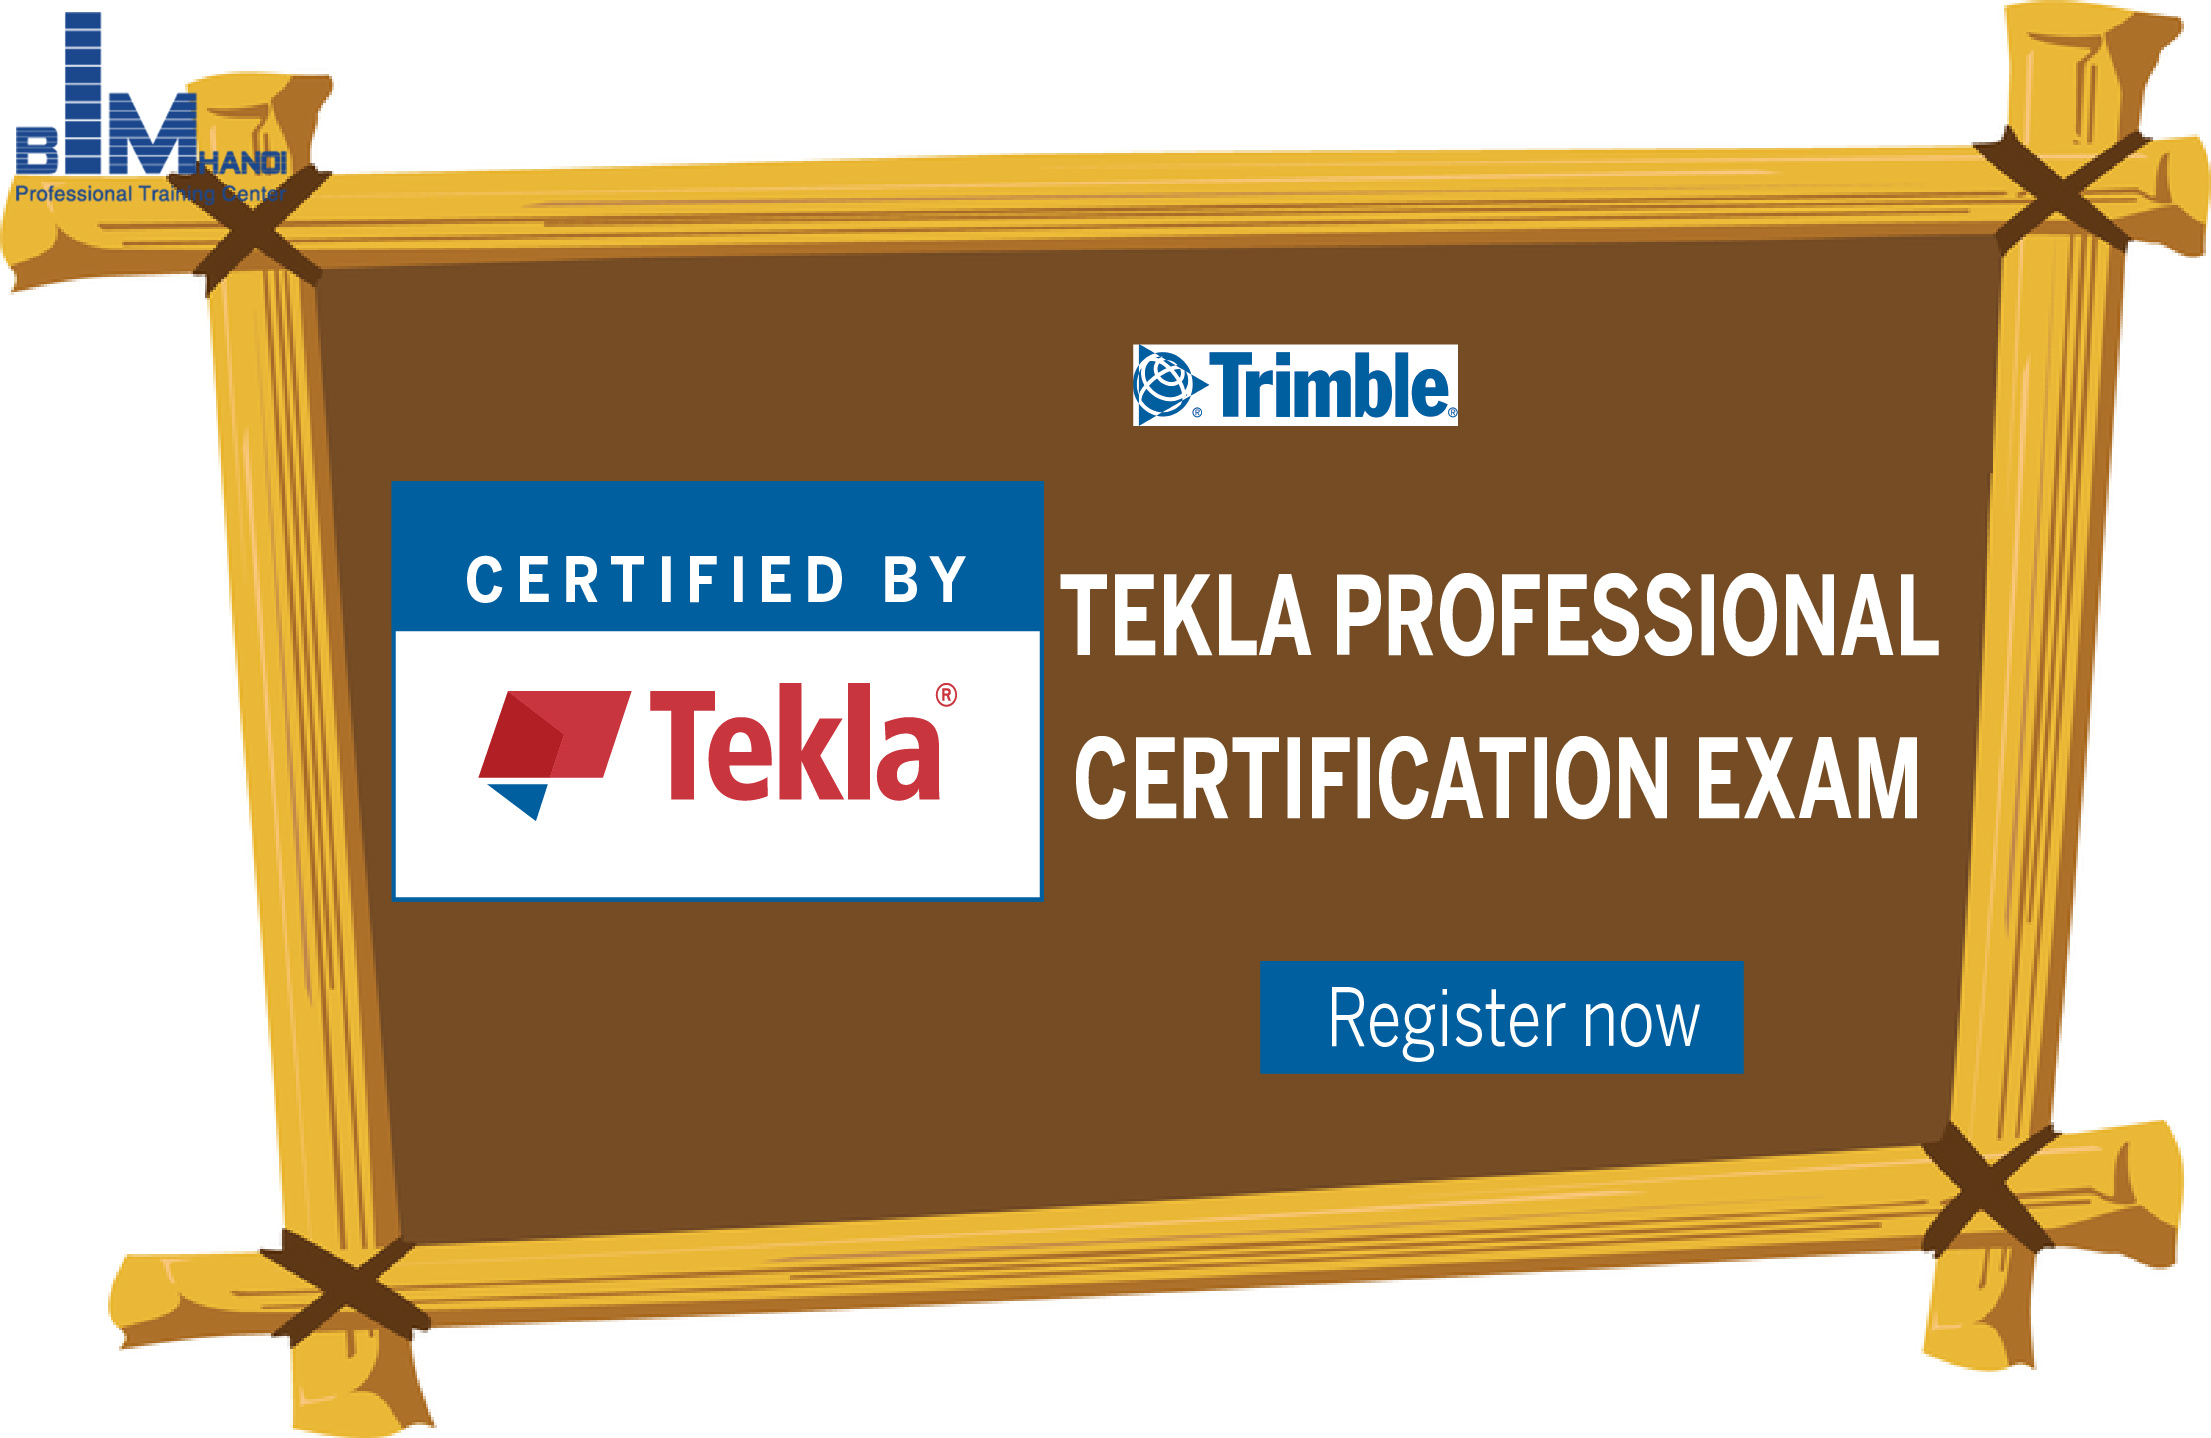 Thi chứng chỉ Tekla Professional Certificate